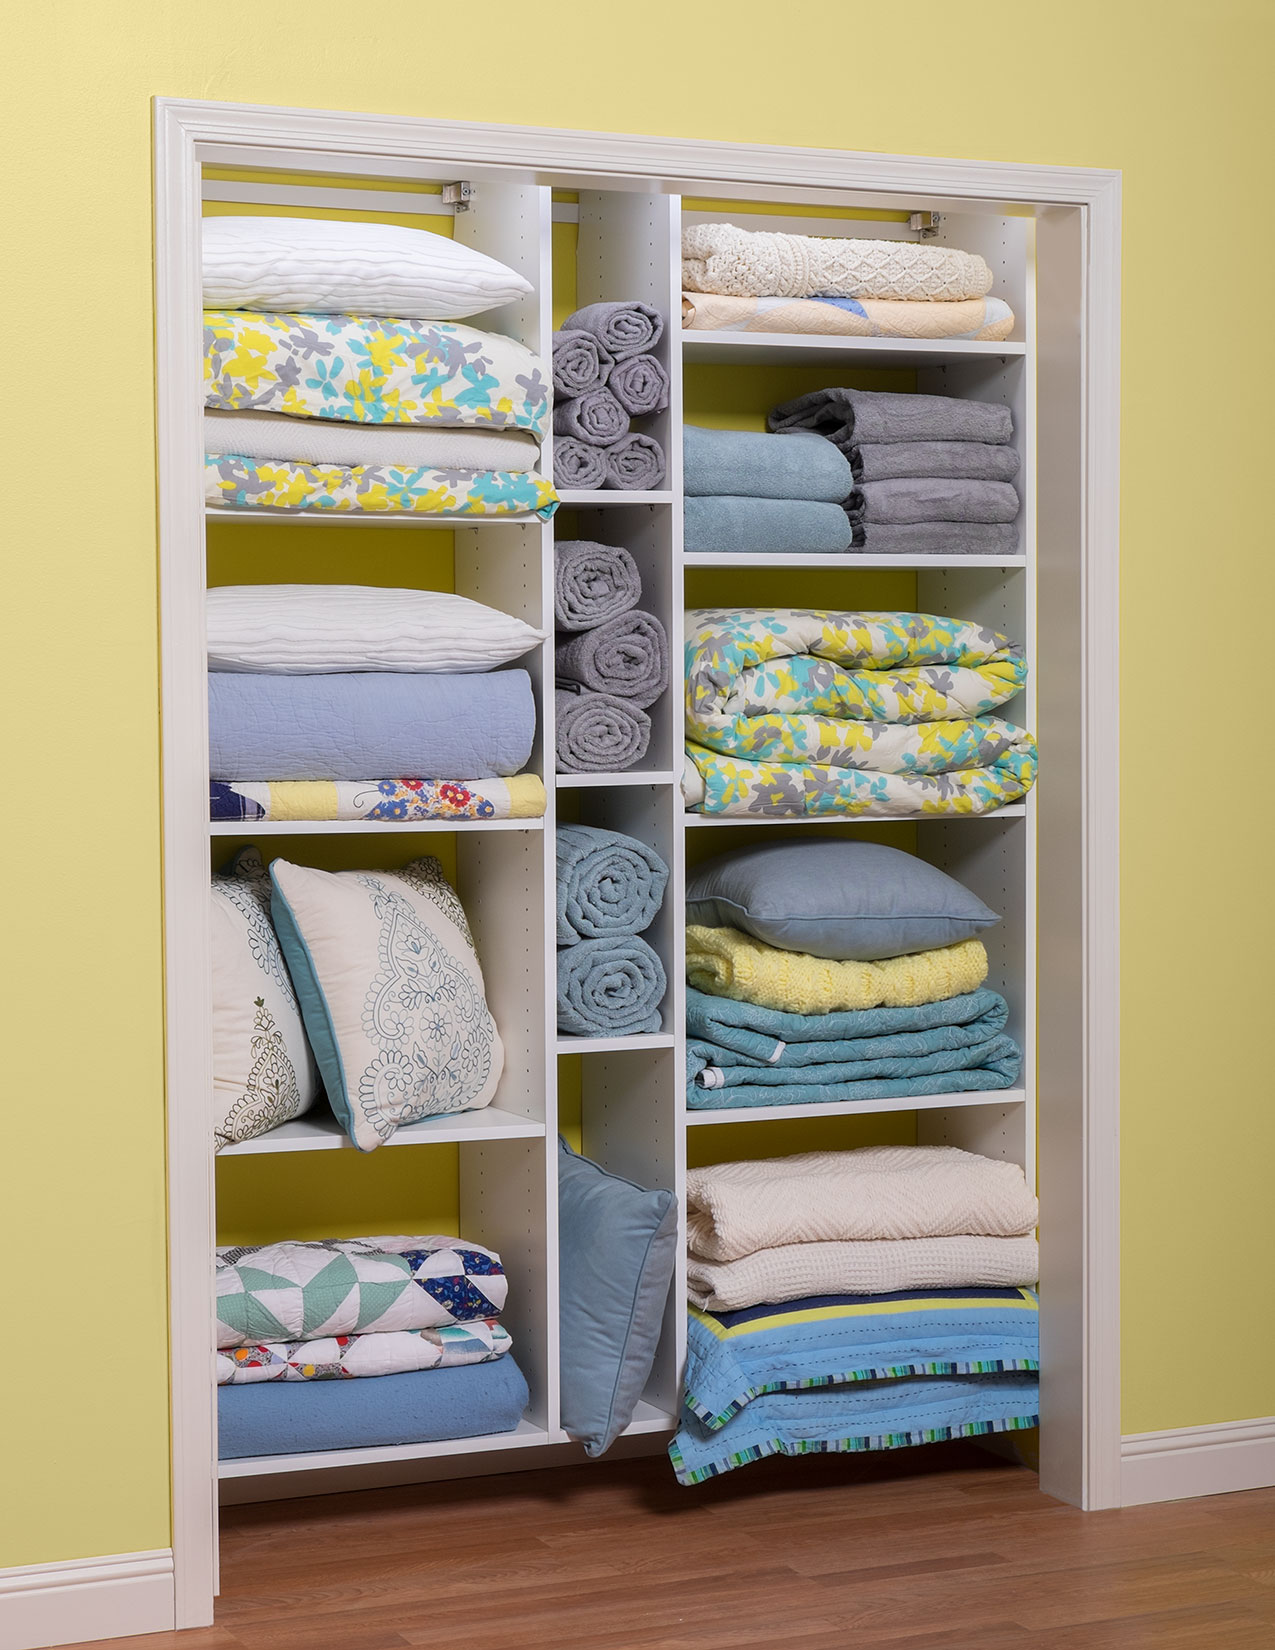 Linen Closet Organizer Systems Utility Room Storage And Closet Cabinets Organizers Direct